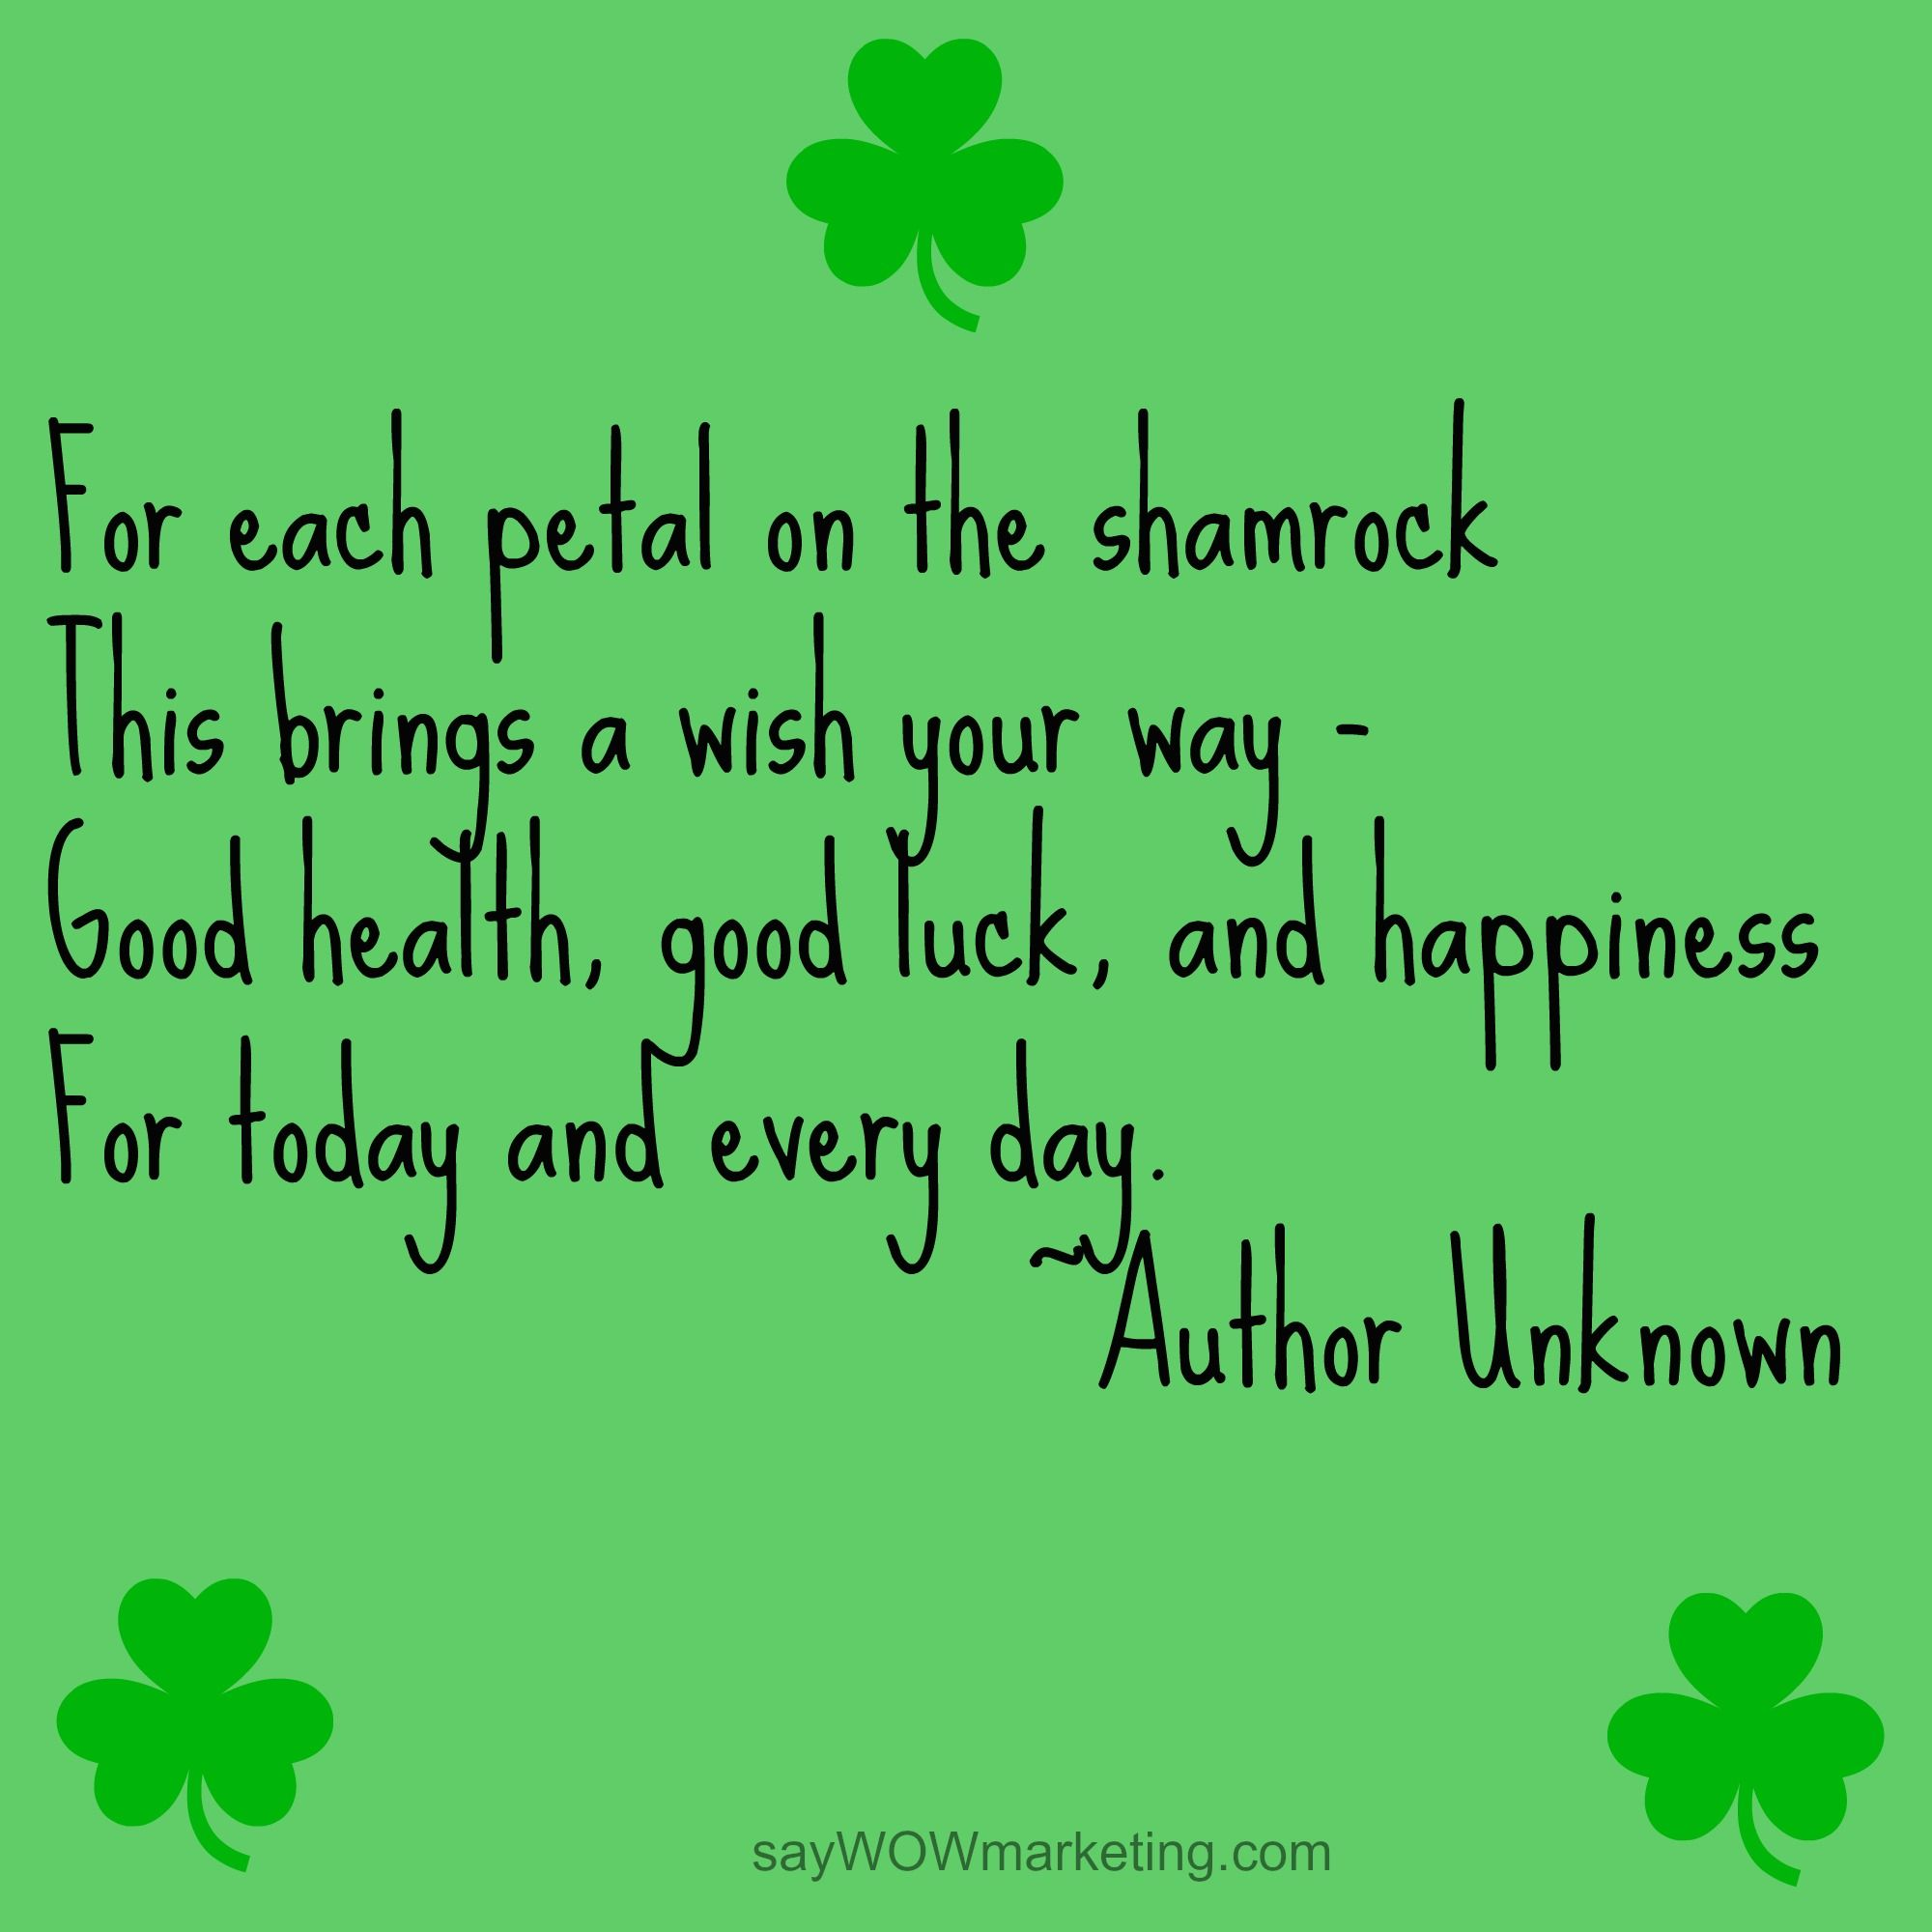 Good Health Quotes Happy Stpatrick's Day For Each Petal On The Shamrock This